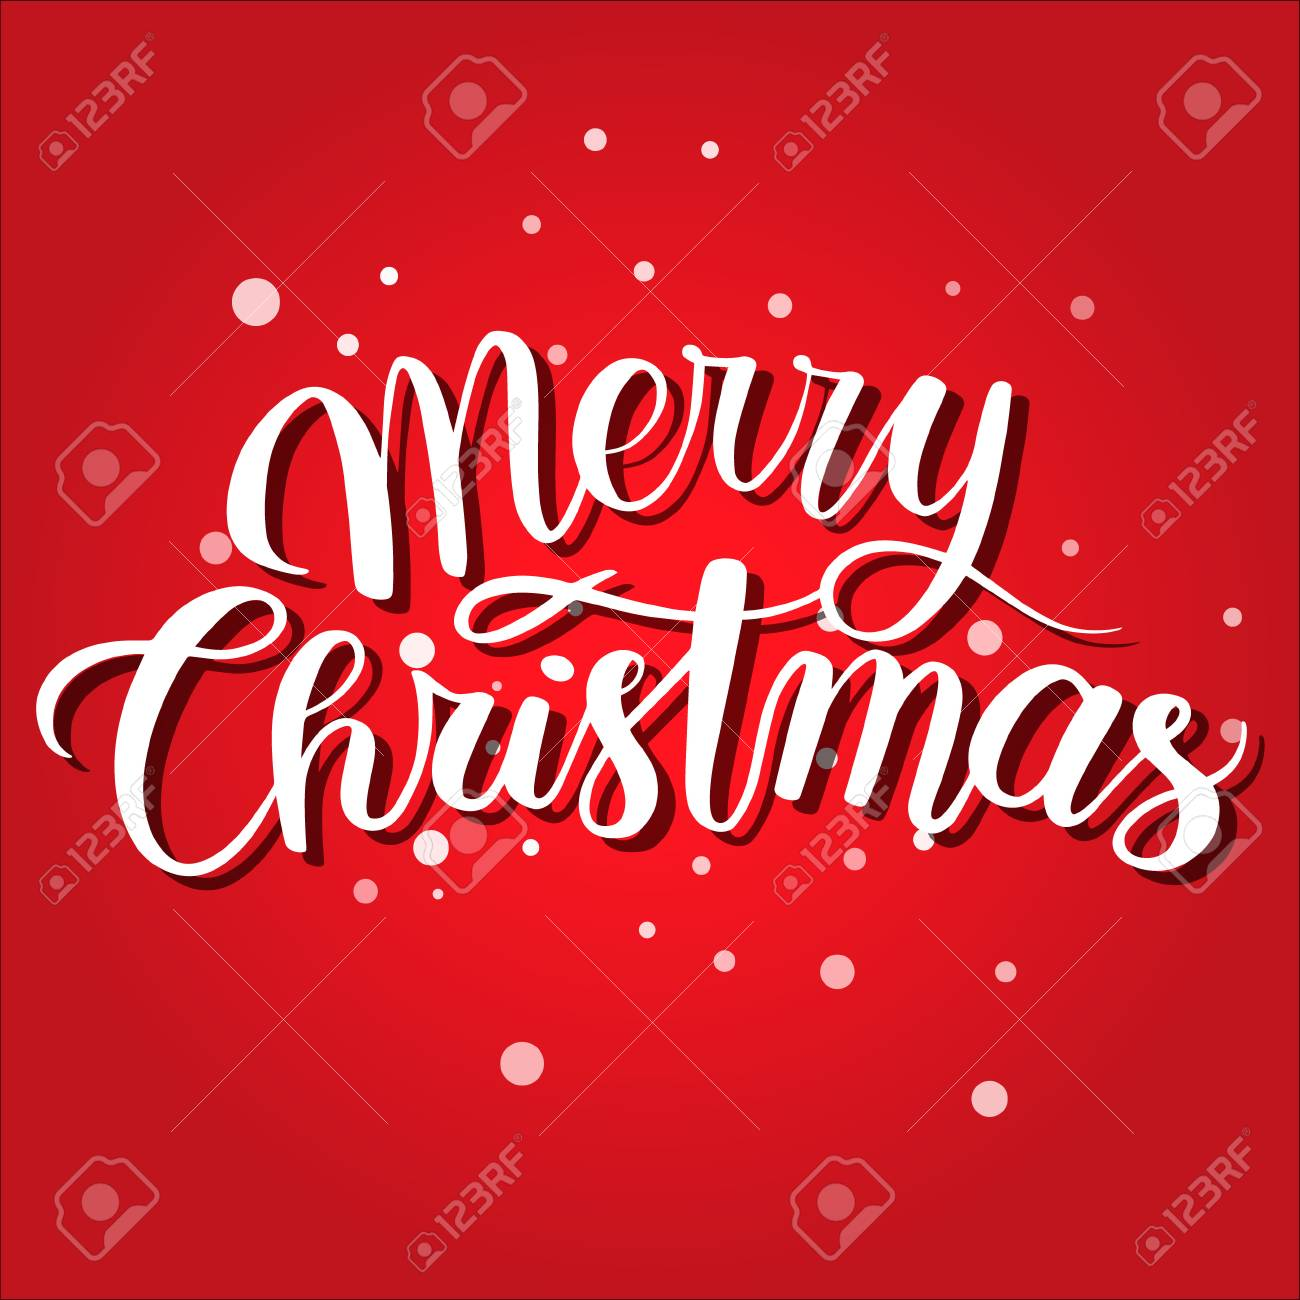 Mery Christmas.Mery Christmas Postcard Red Holiday Background Xmas